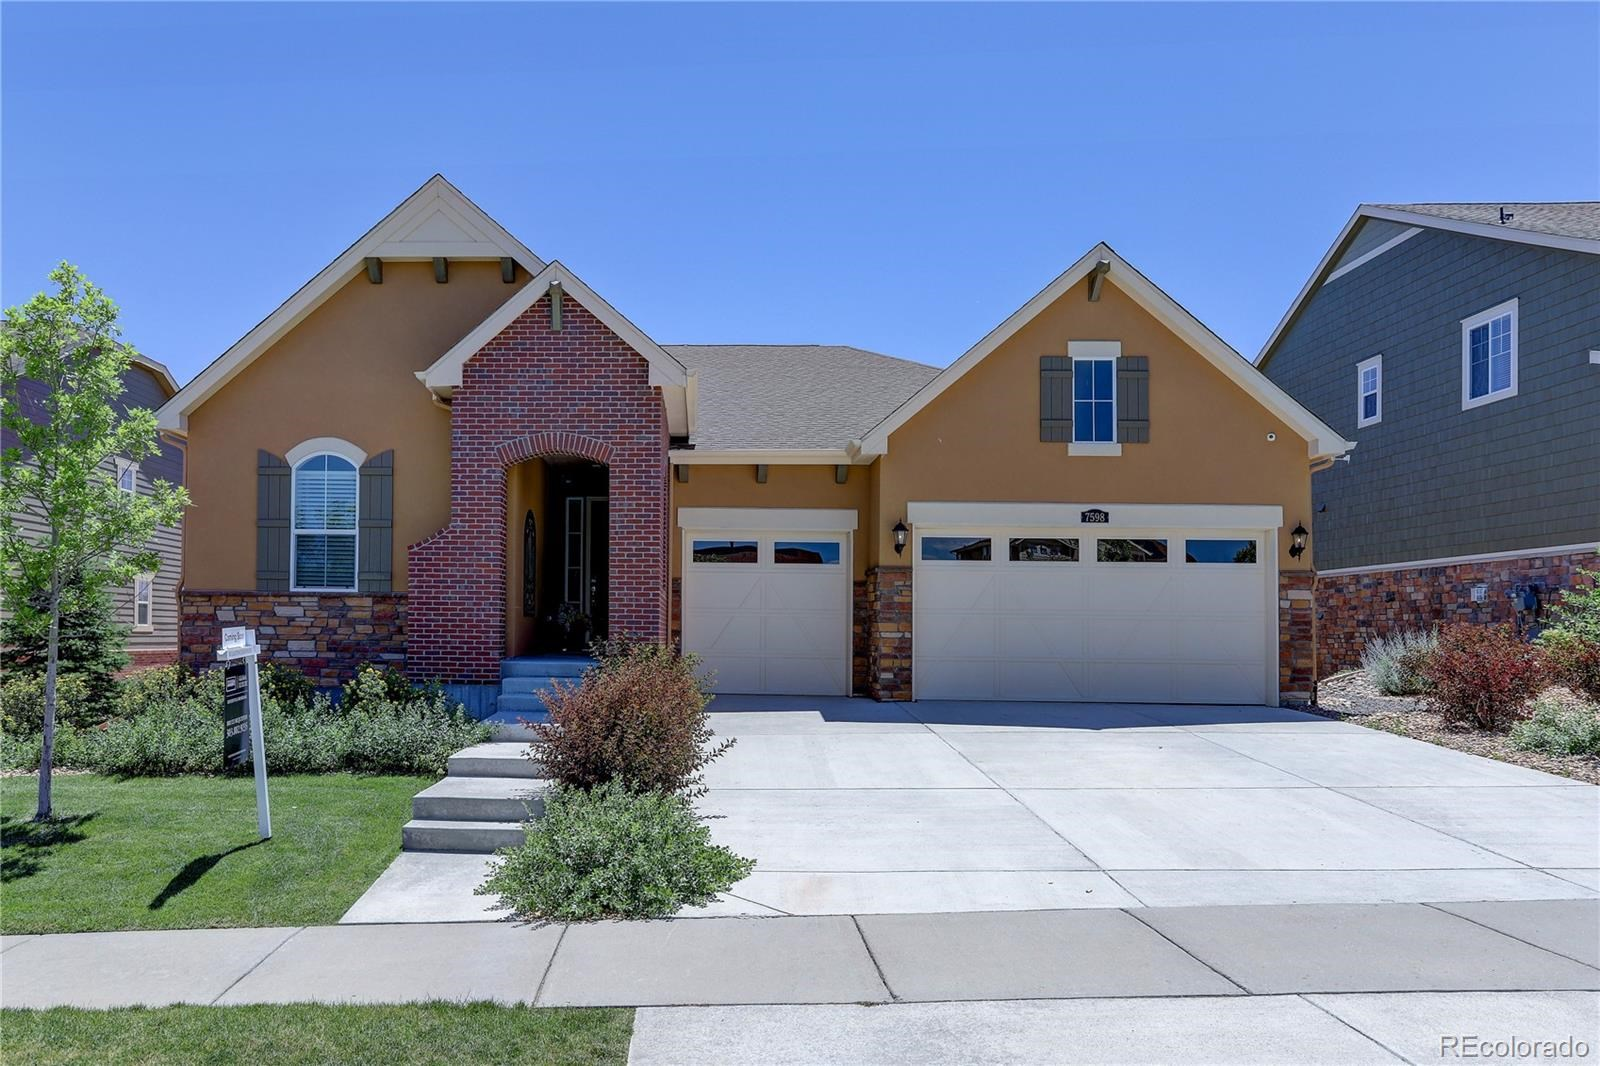 MLS# 8545425 - 2 - 7598 S Country Club Parkway, Aurora, CO 80016